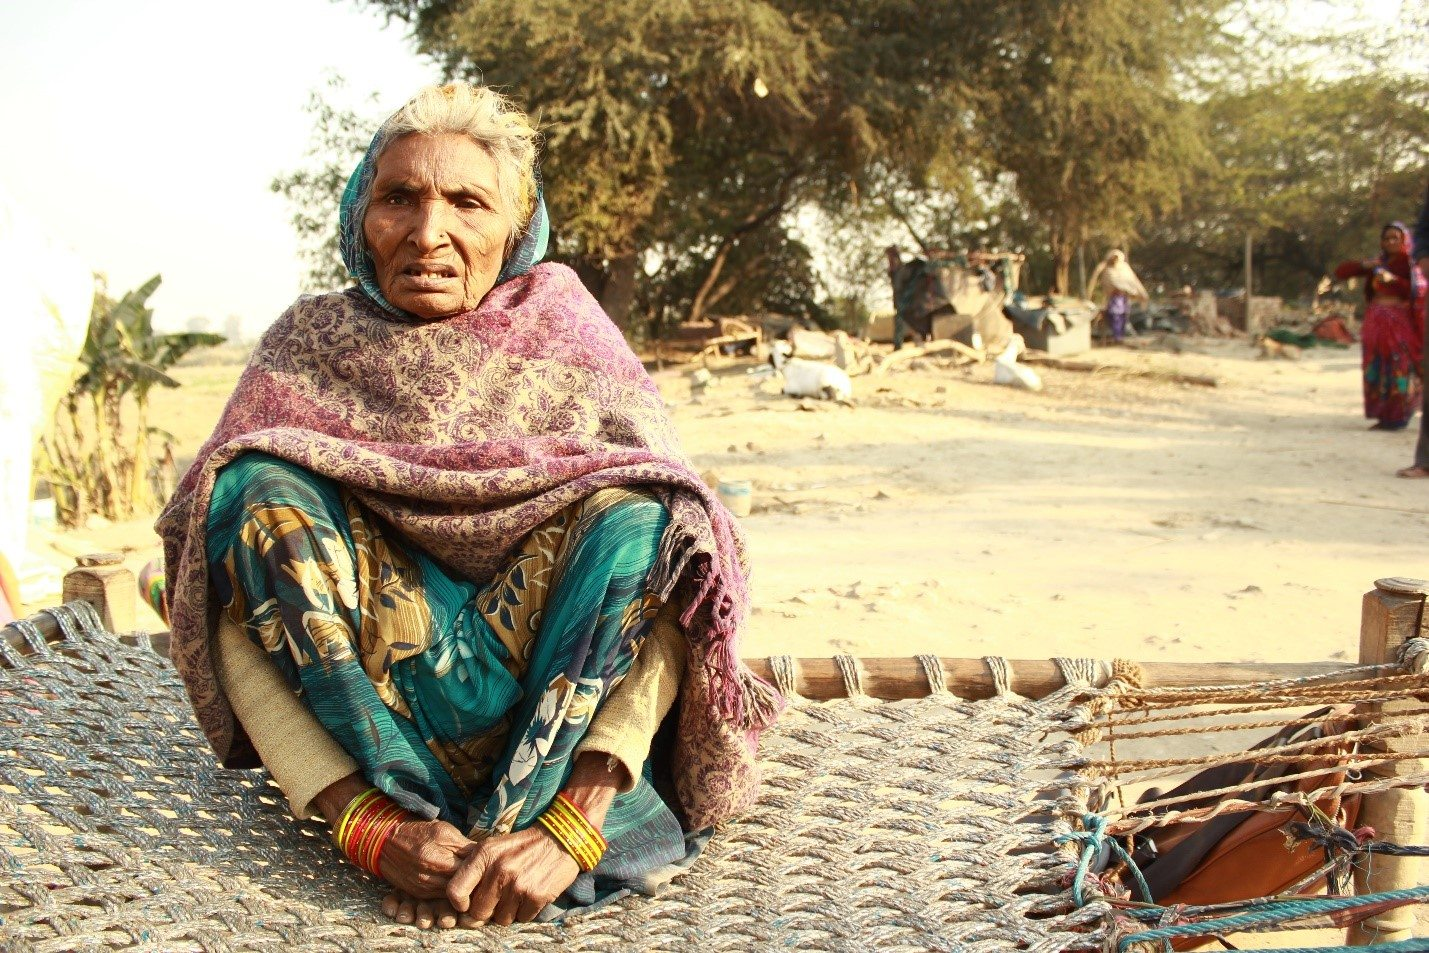 Rani Tai, 85, who has been living in Belagaon for the past 70 years spends most of her days in delirium talking about the day she briefly met Subhash Chandra Bose. Too old and frail to rebuild her house, she has been living with her relatives since the demolition happened.